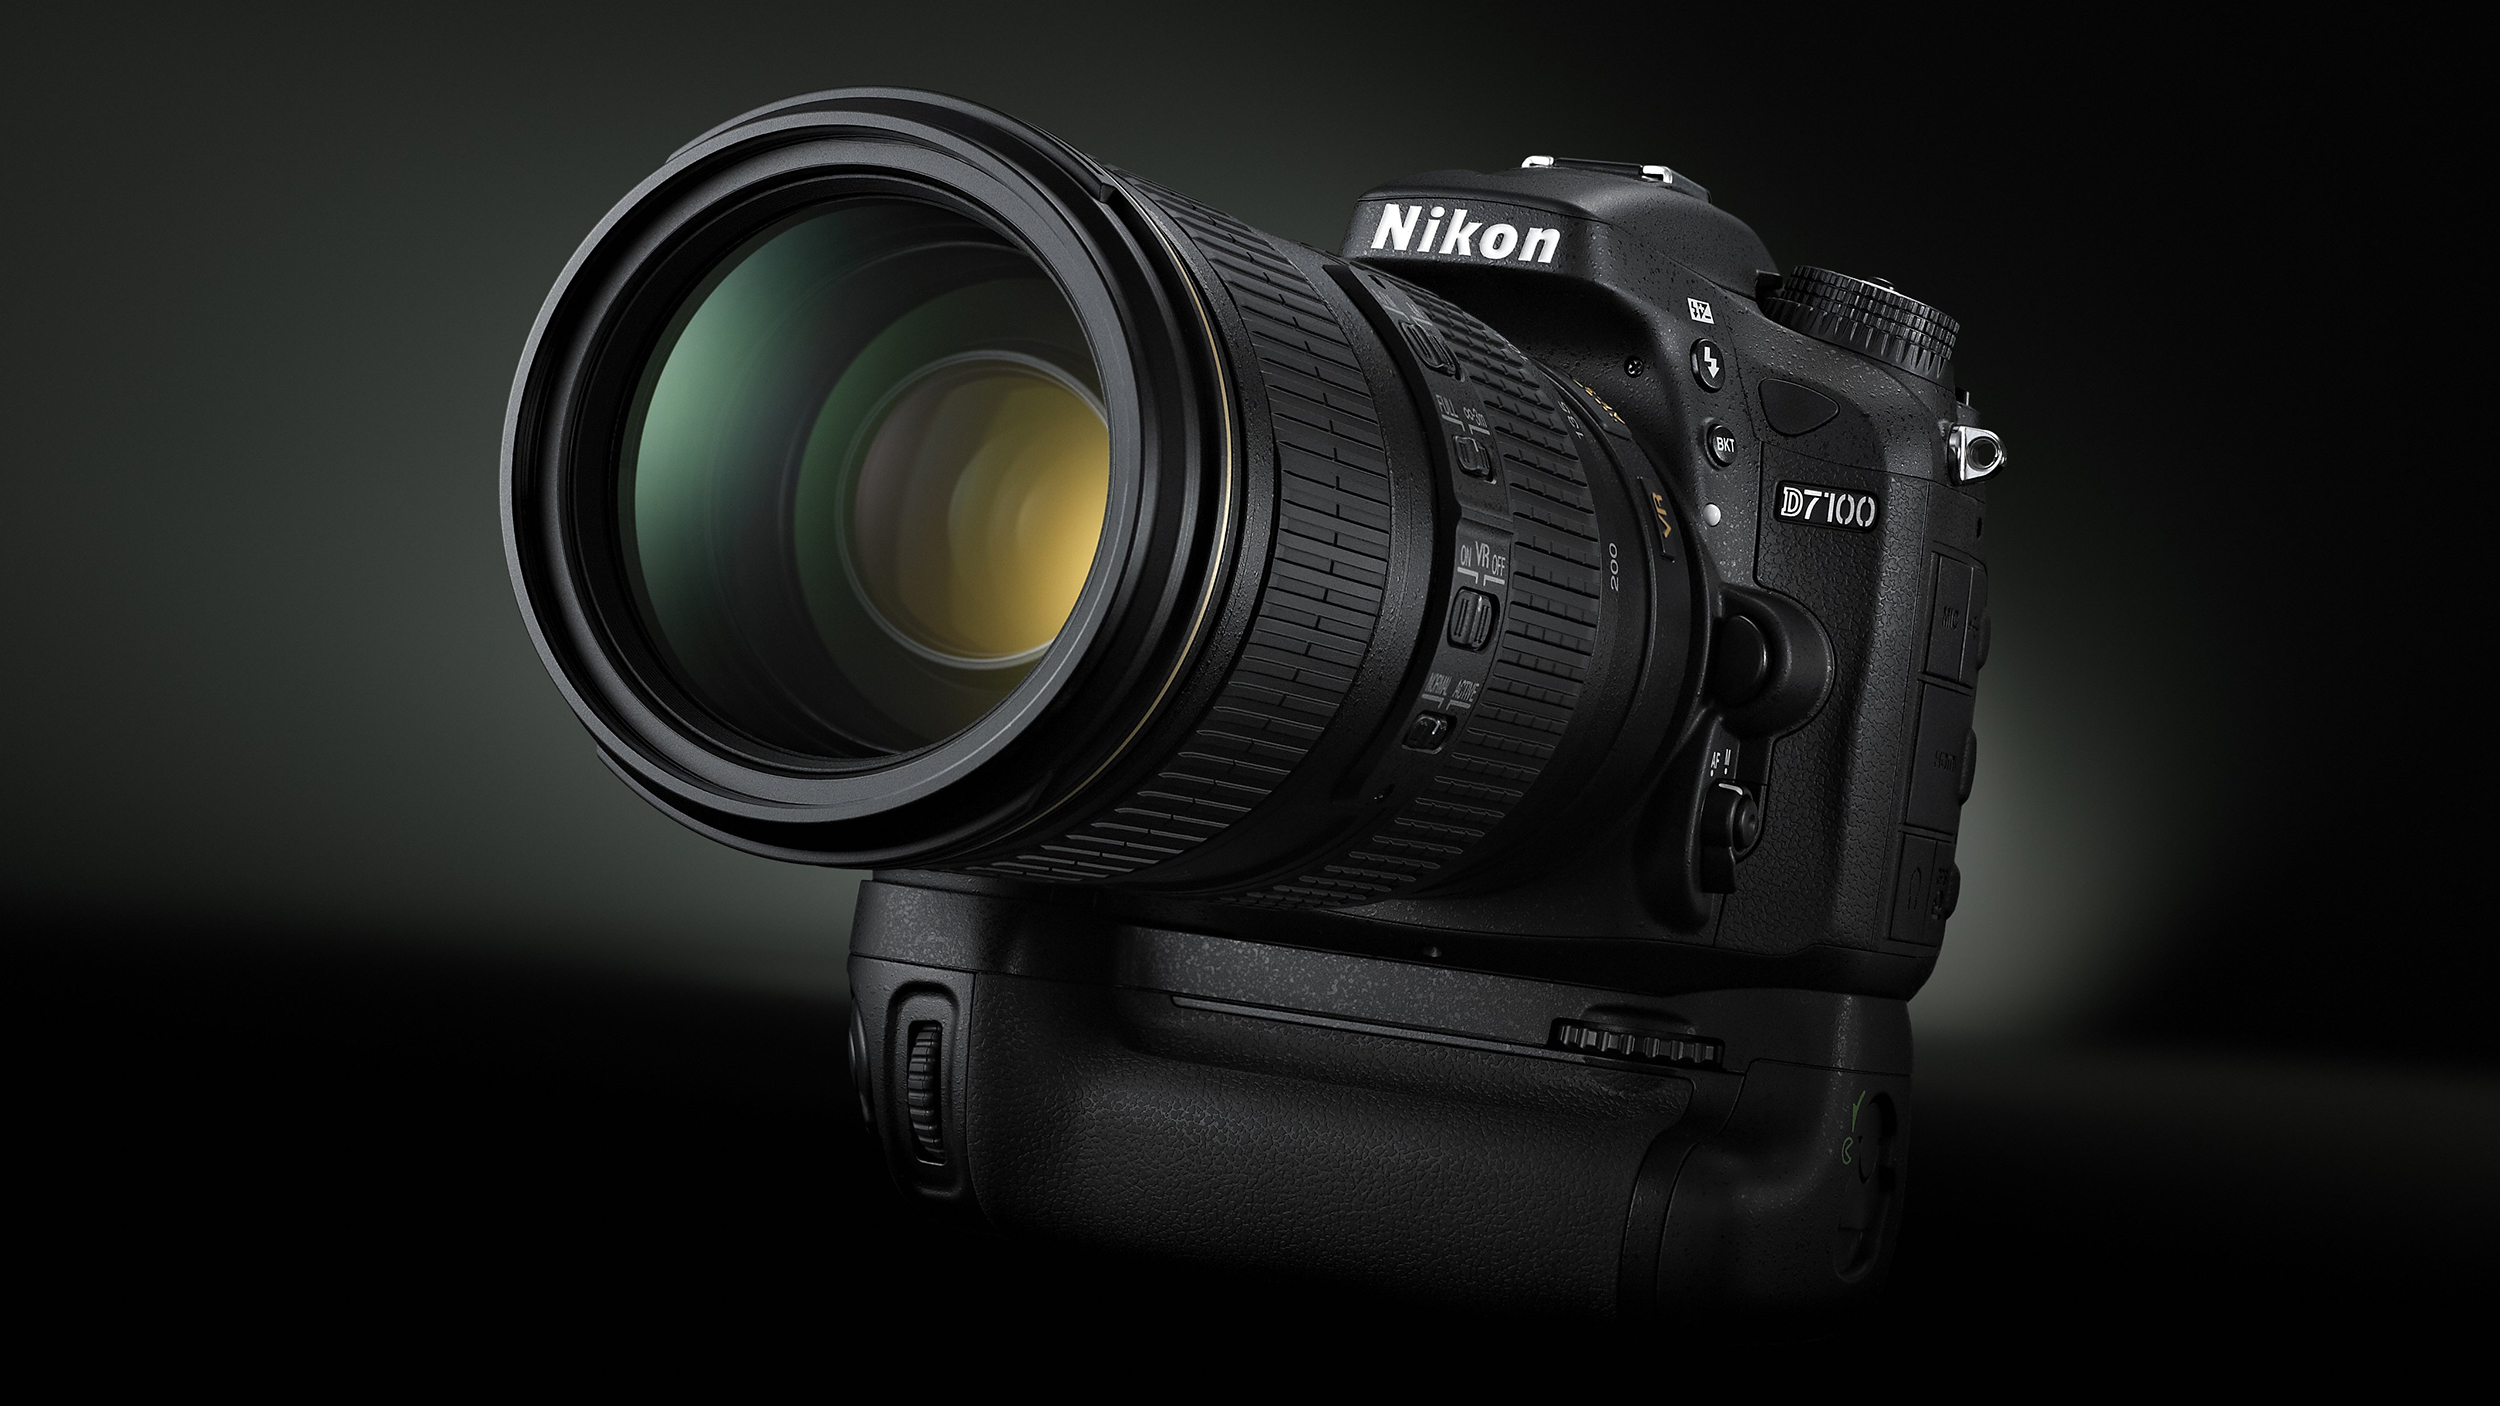 Best Nikon lenses 2018: 10 top options for Nikon APS-C DSLRs